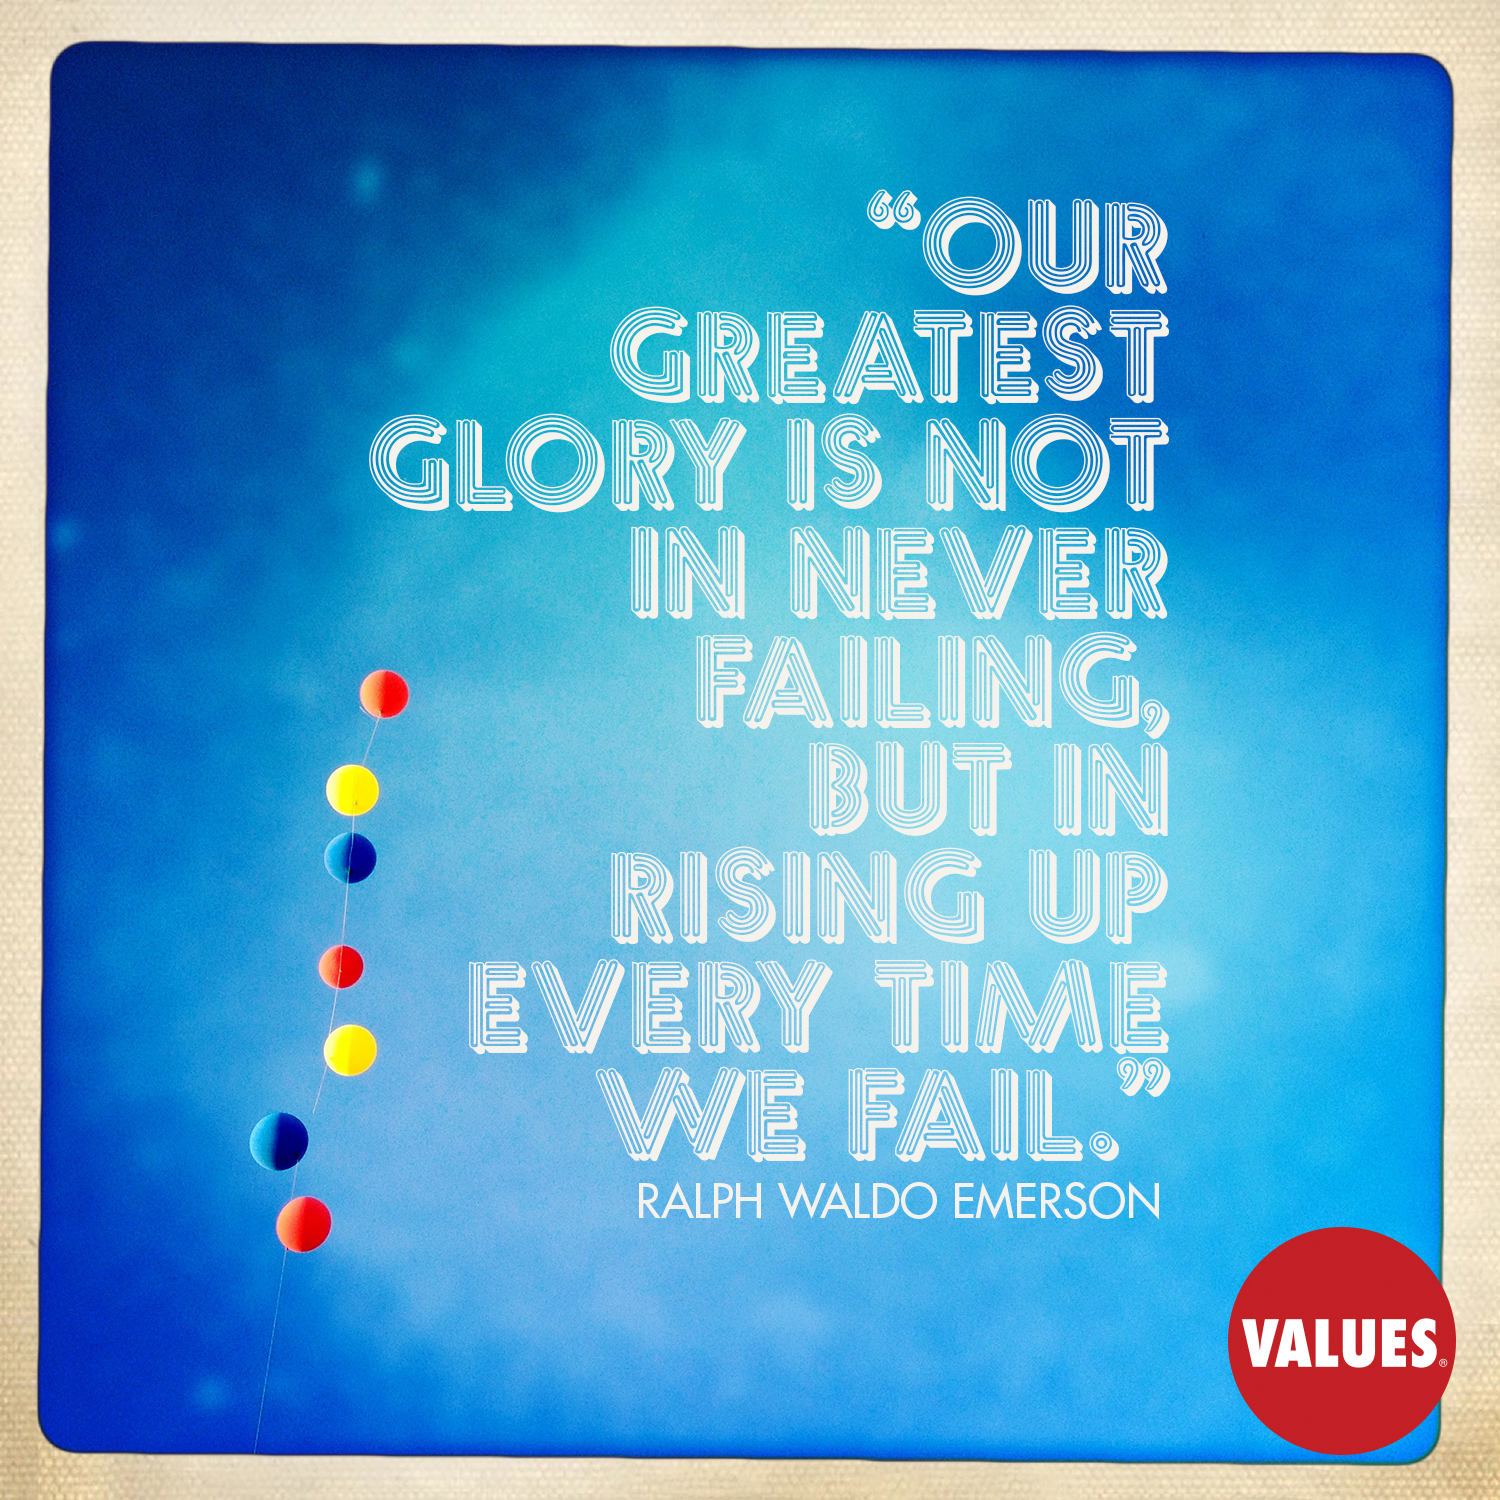 Our greatest glory is not in never failing, but in rising up every time we fail. —Ralph Waldo Emerson